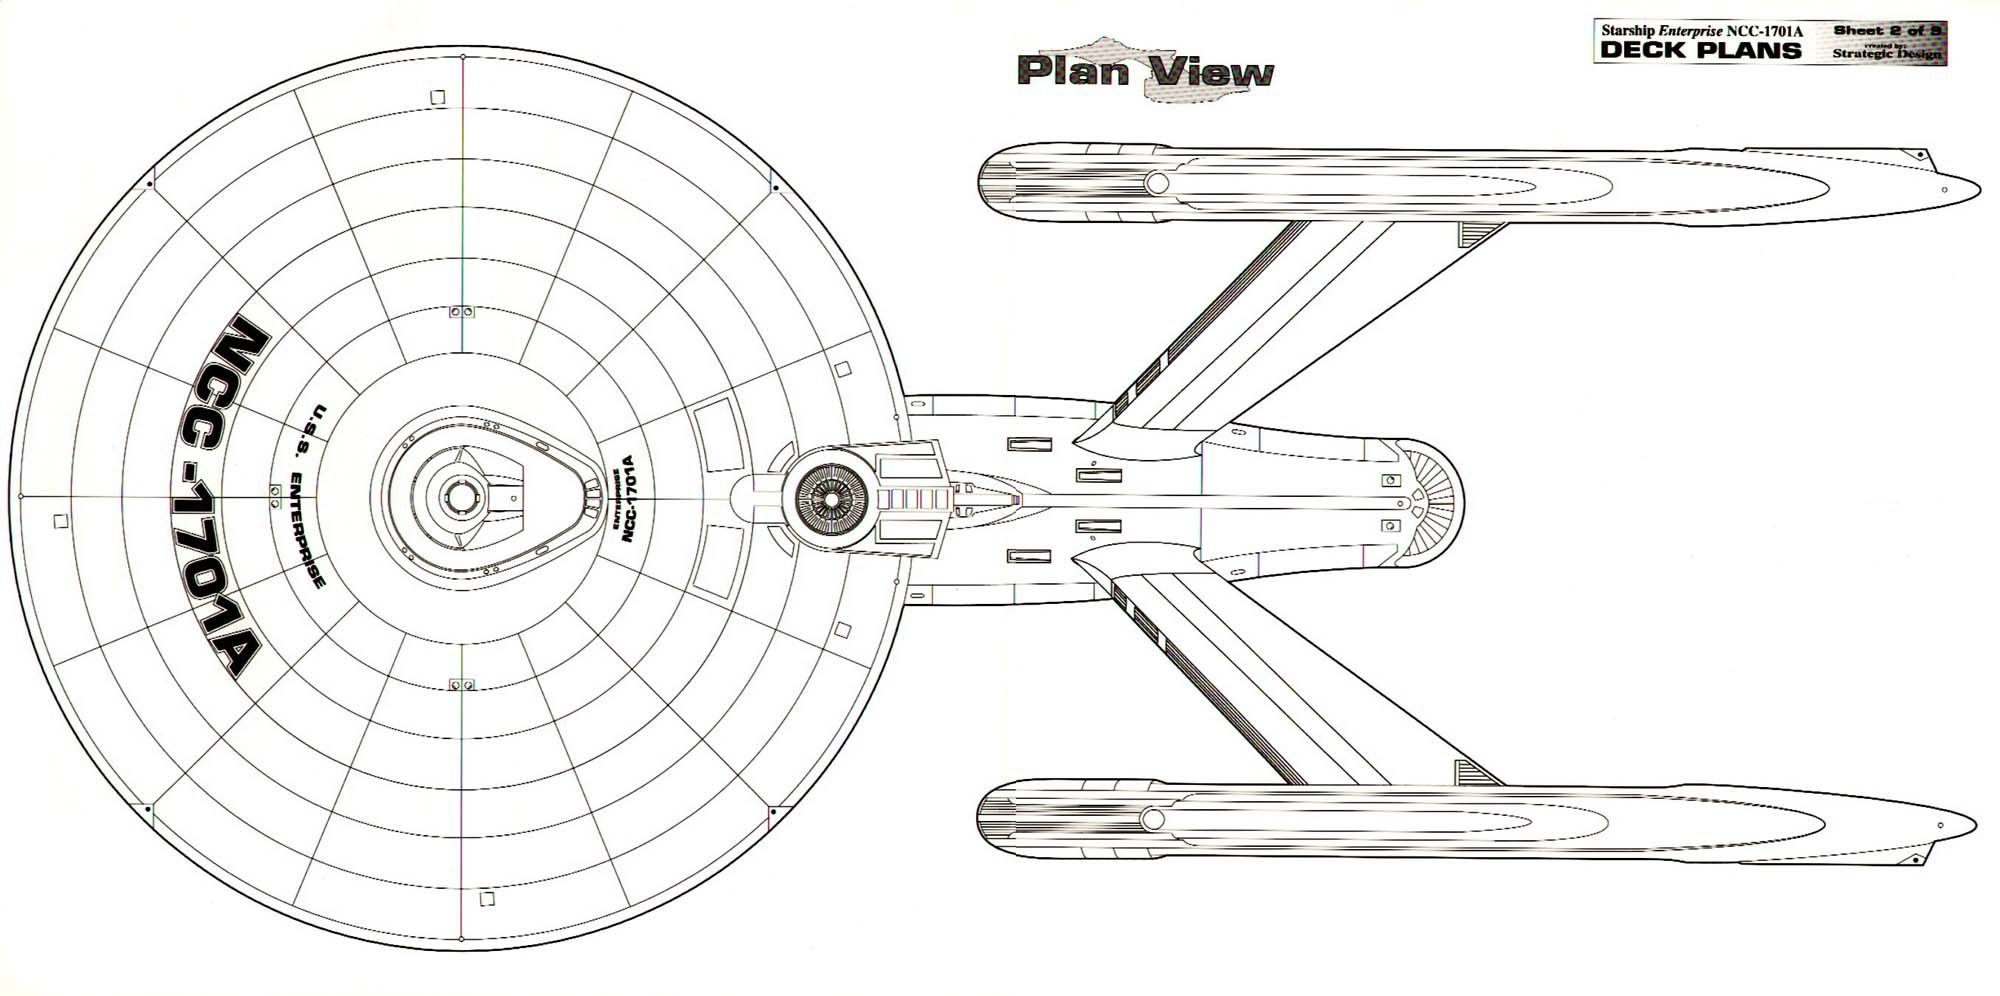 Dorsal Schematic Of U S S Enterprise Ncc A